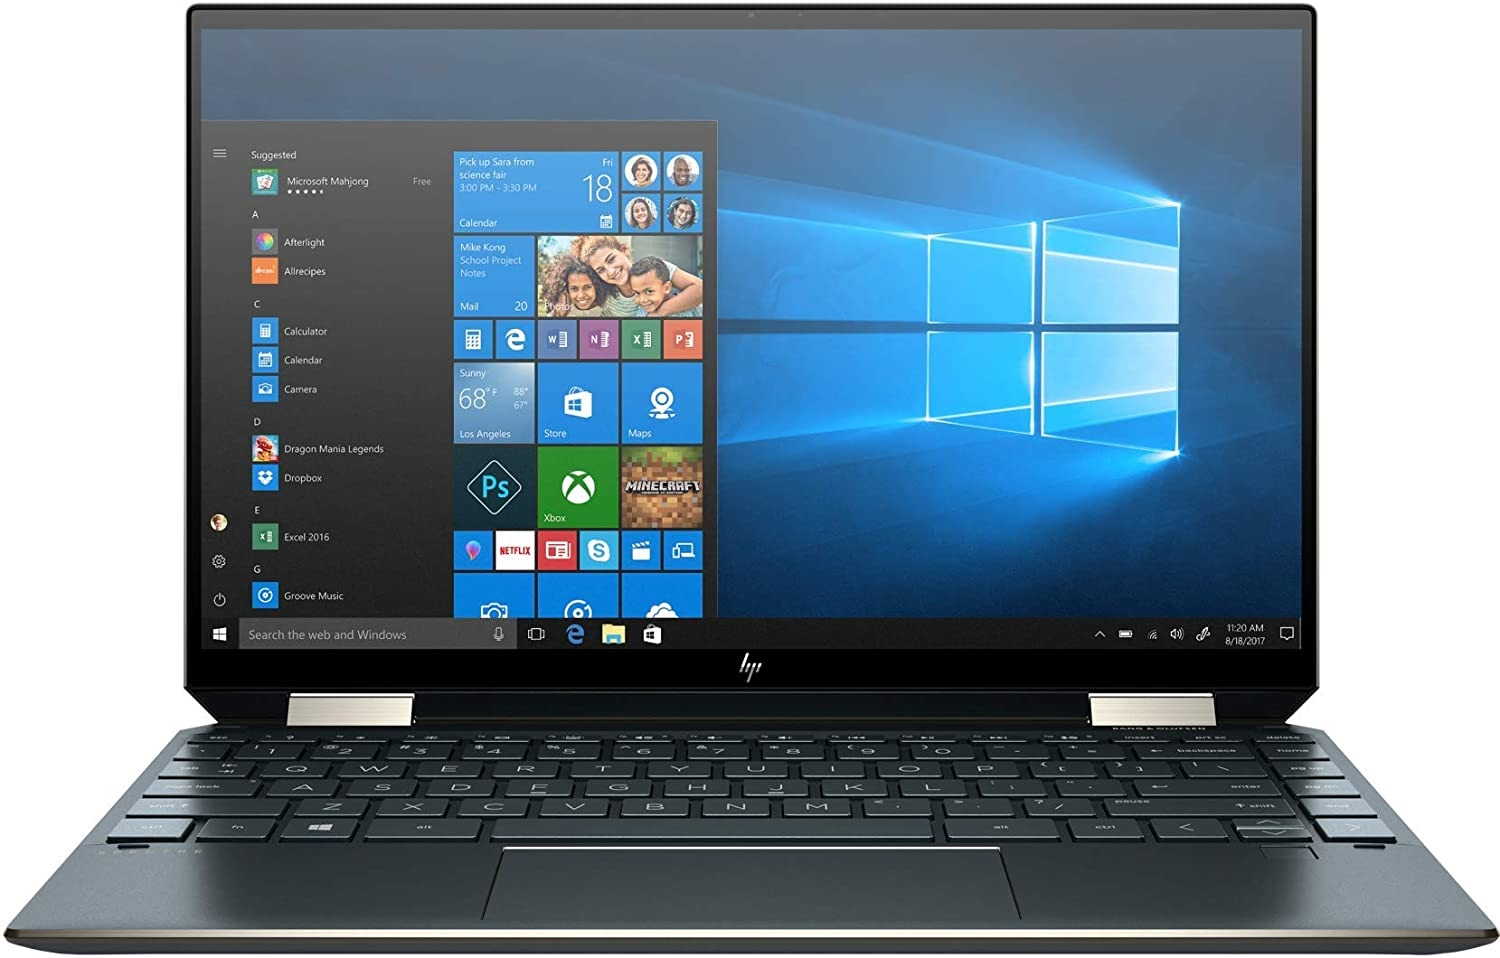 HP Spectre X360 13t 2020 model Touch screen, Natural silver, Nightfall Black, Poseidon Blue